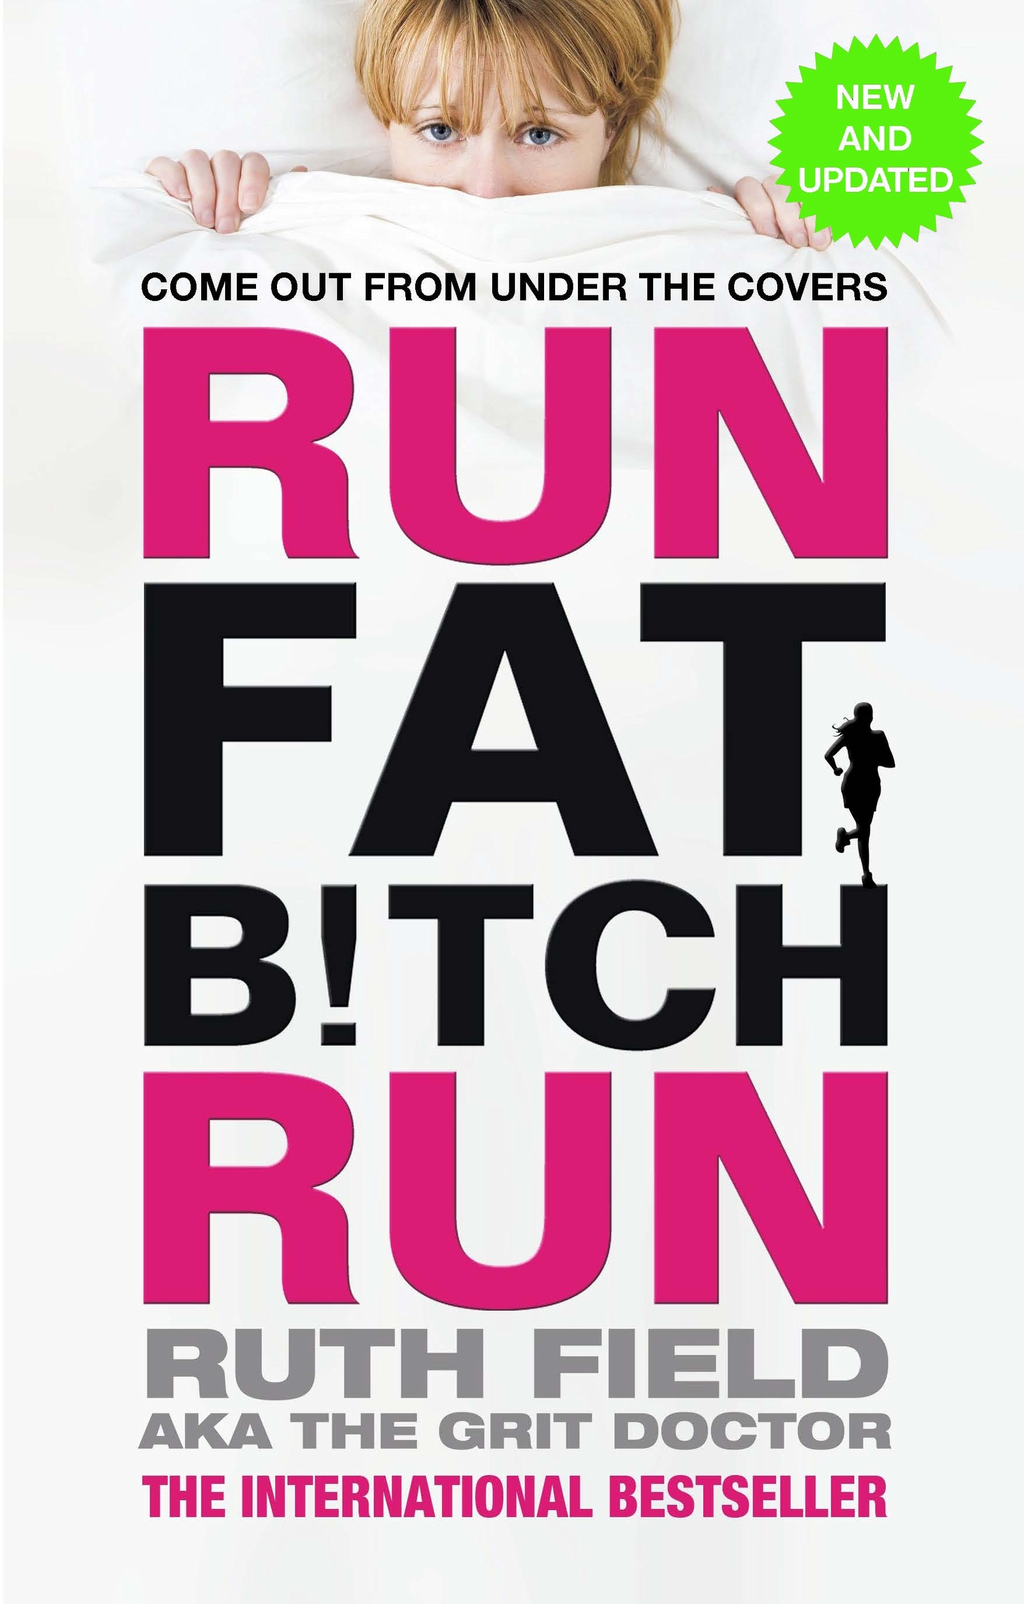 Run Fat Bitch Run